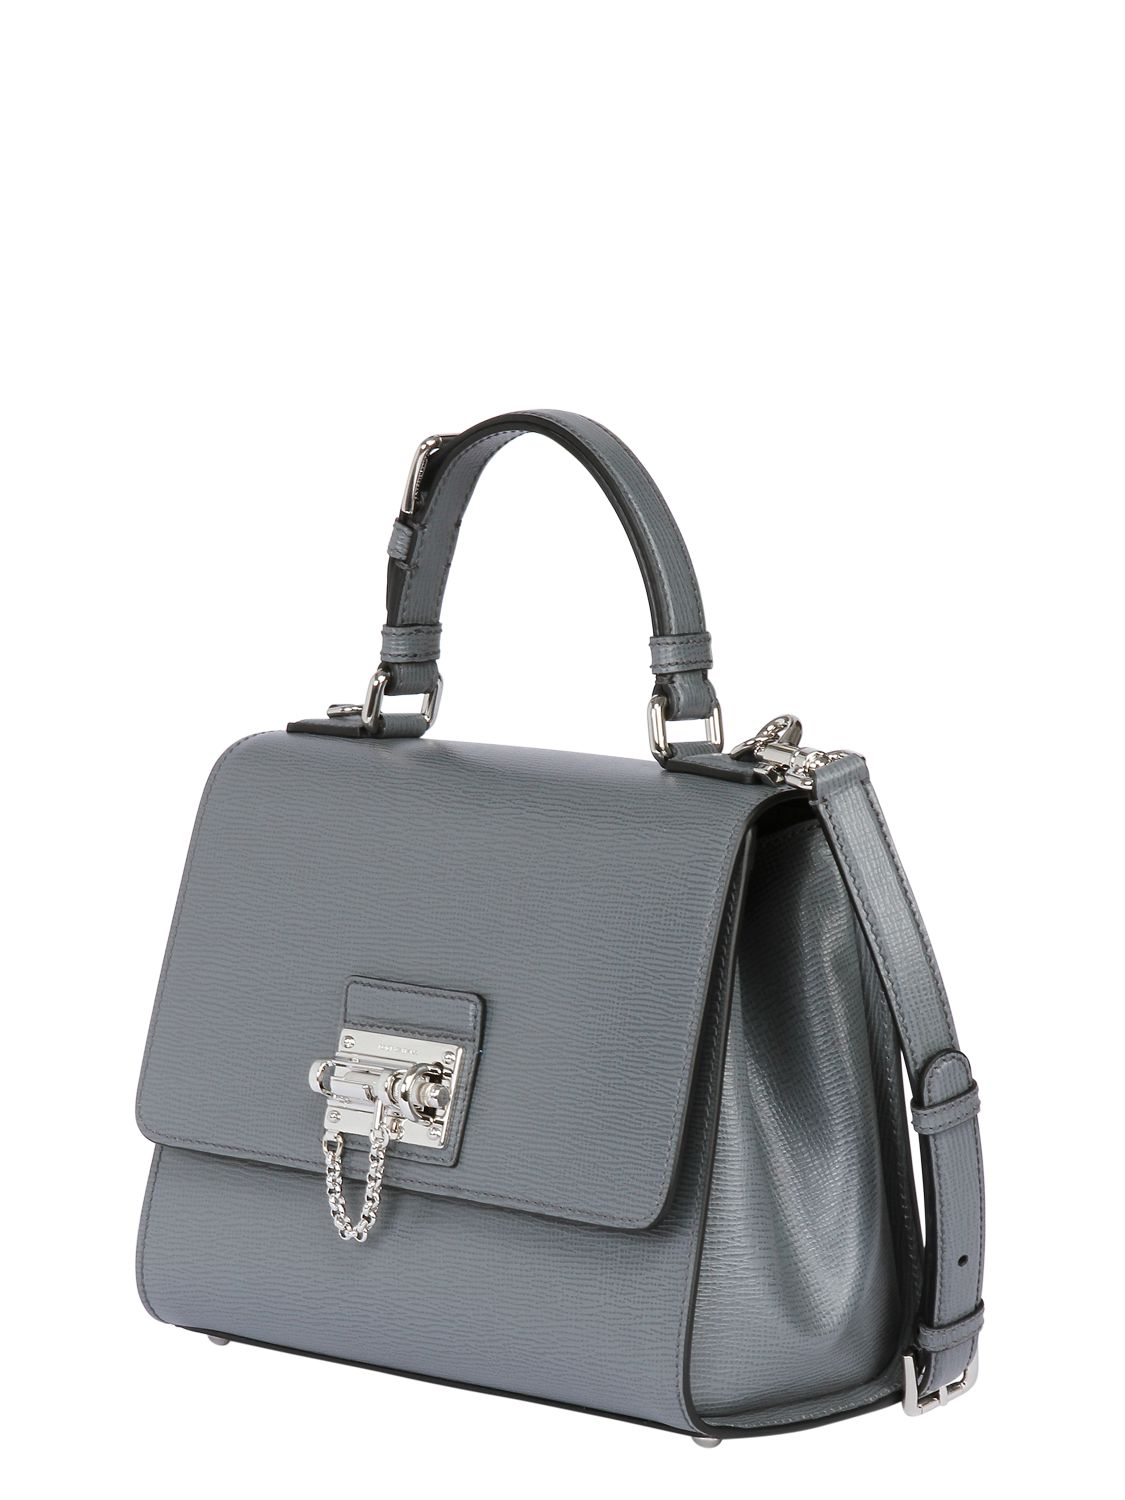 40bca8bc45 Dolce   Gabbana Monica Embossed Leather Top Handle Bag in Gray - Lyst